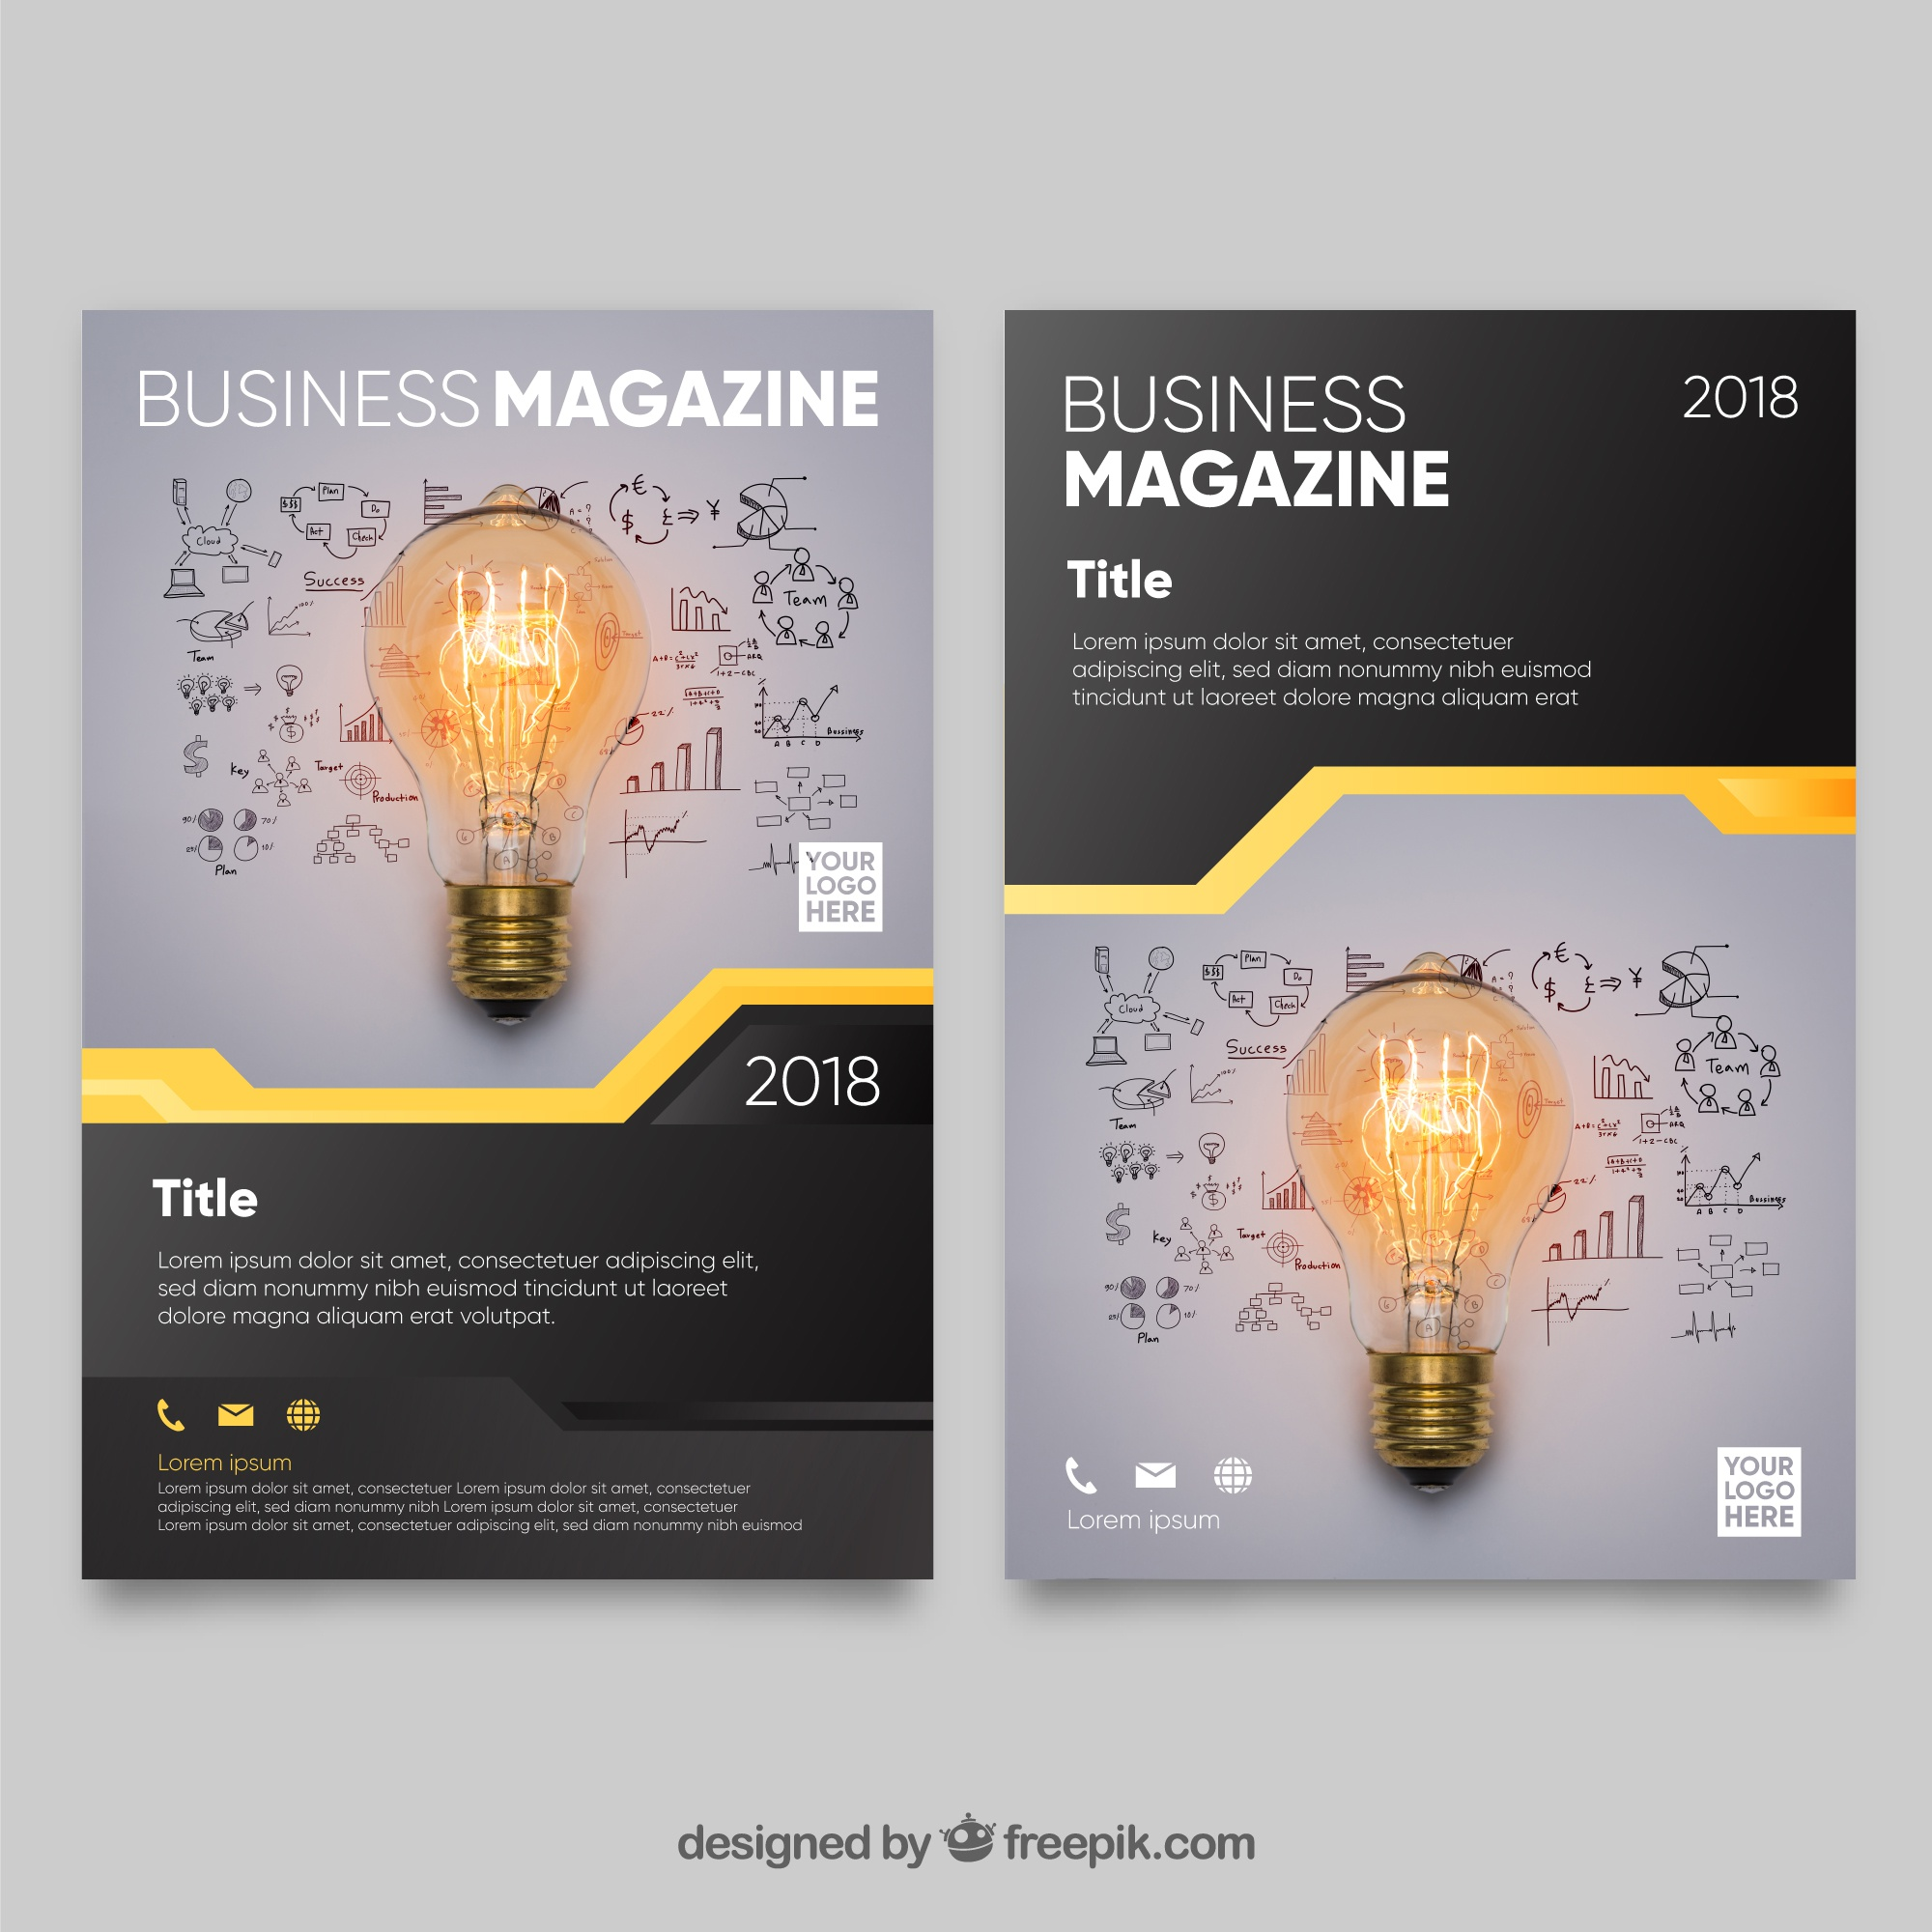 Modern business magazine cover template with photo